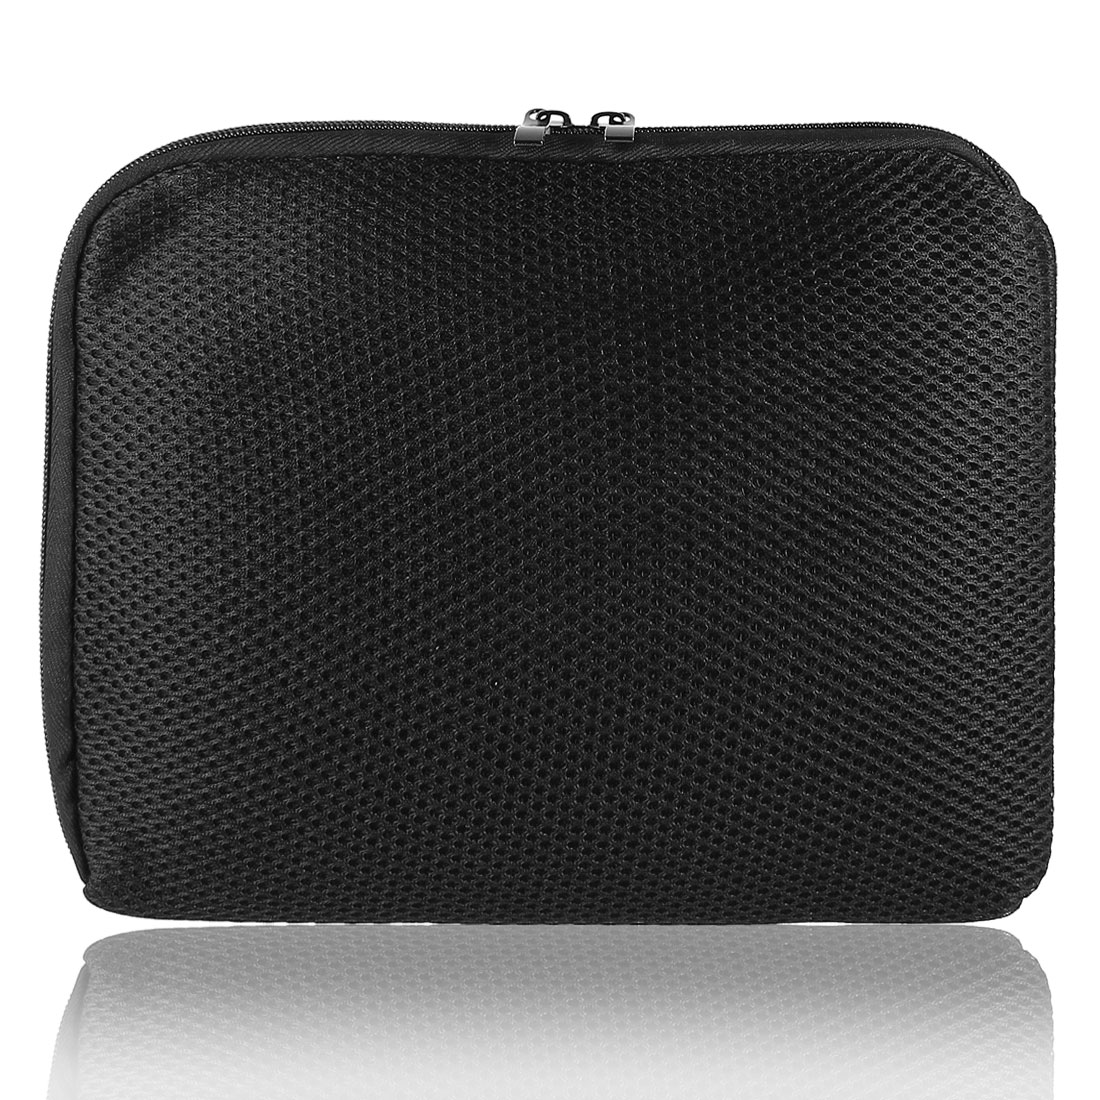 "10"" 10.1"" 10.2"" Black Mesh Notebook Laptop Sleeve Bag Case forTouchPad"